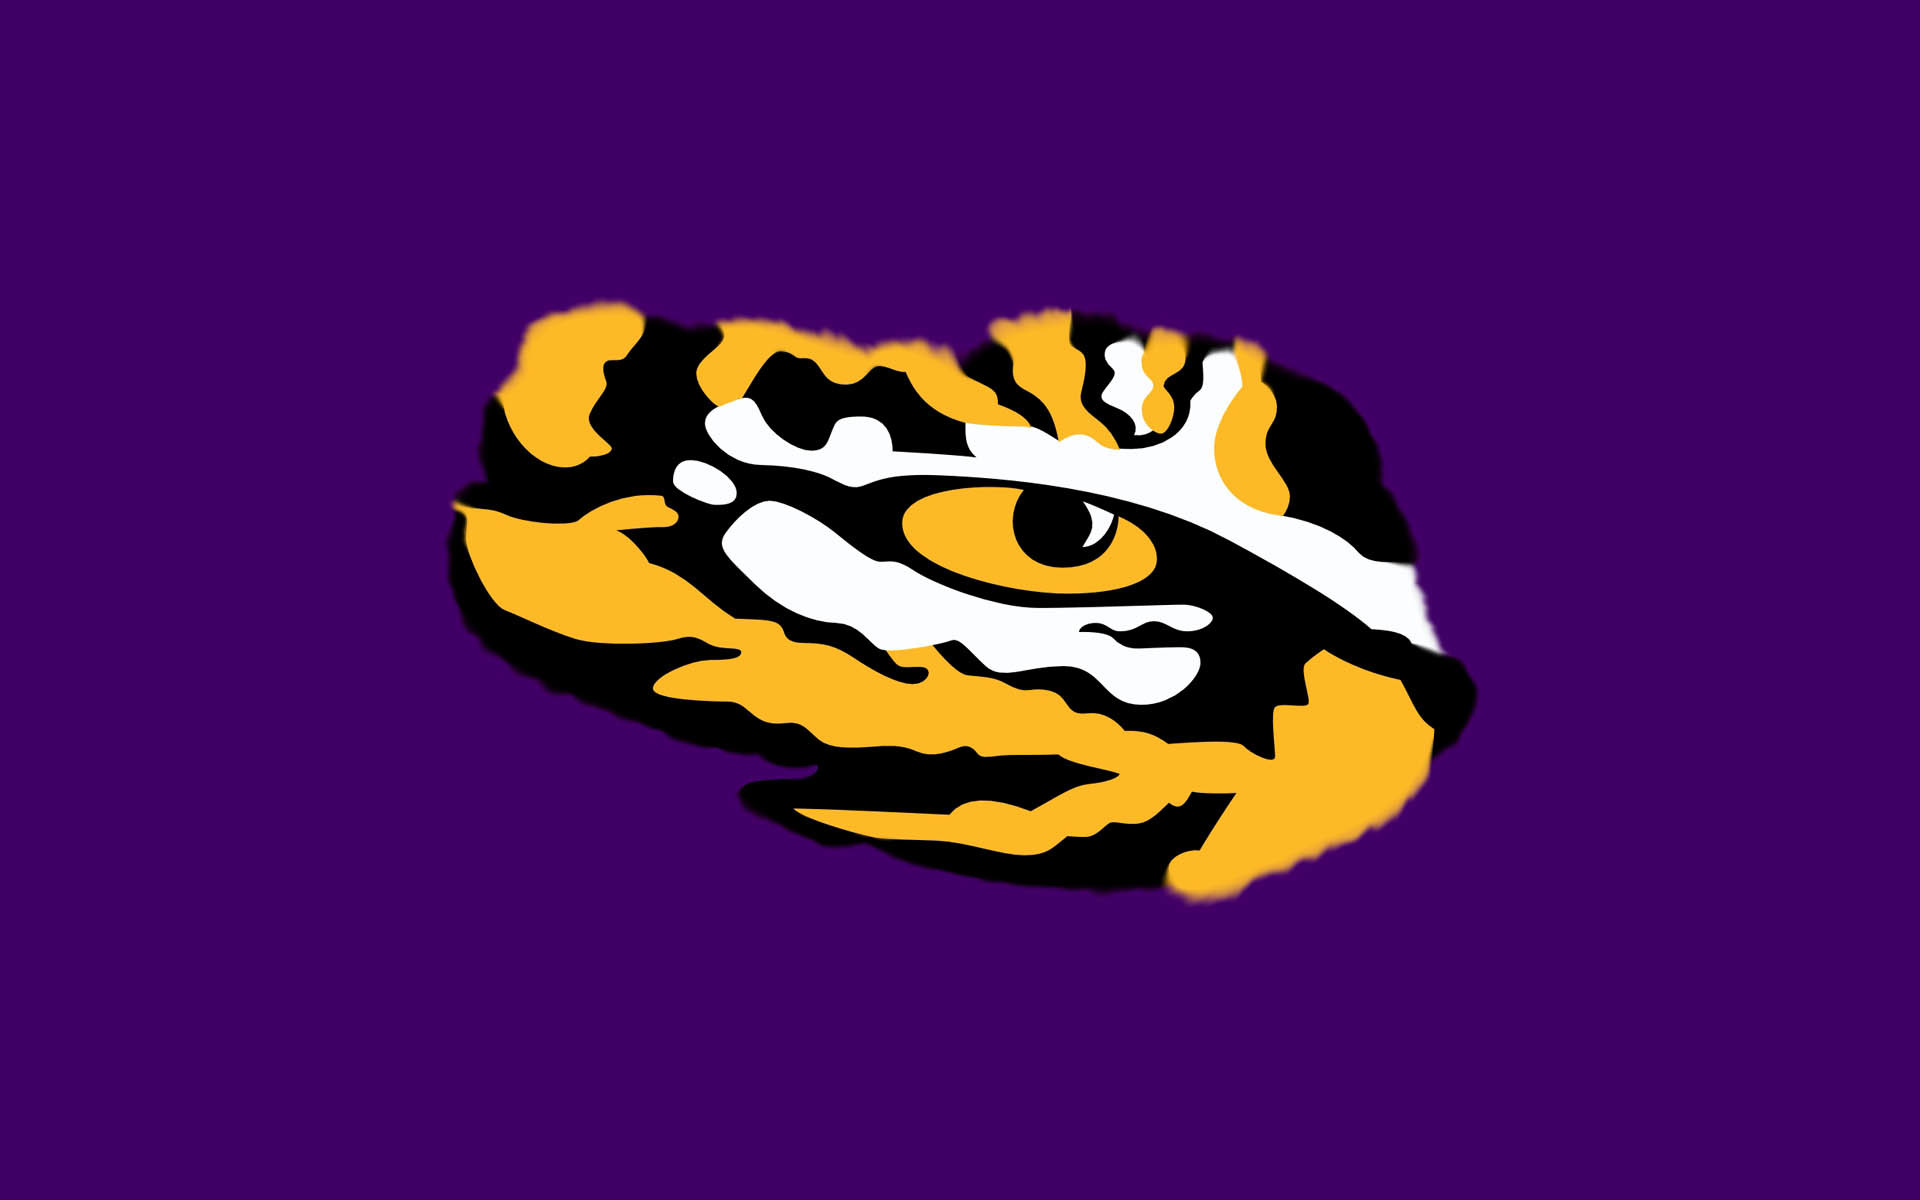 Lsu Tigers Wallpaper for Computer (53+